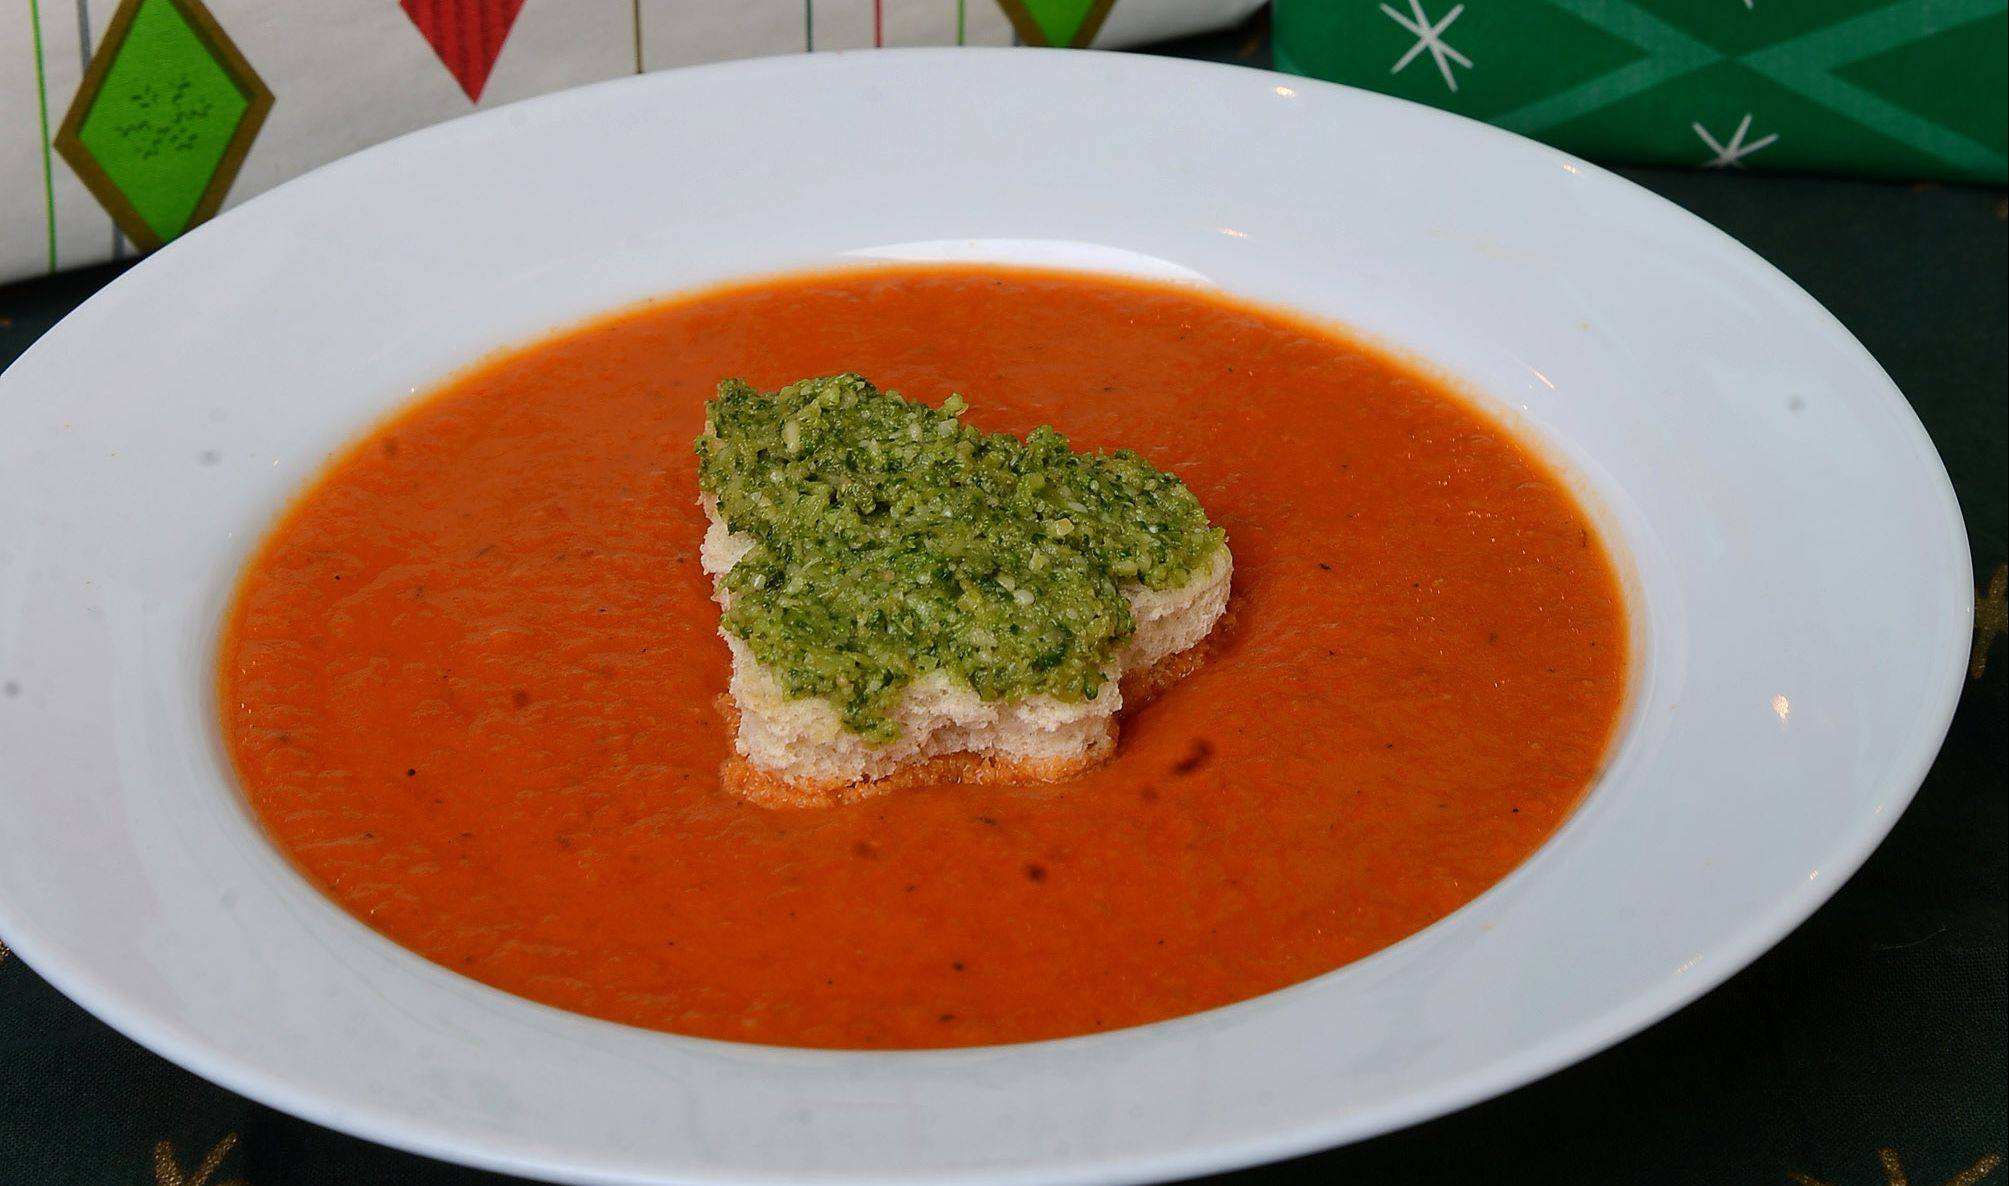 Soupalooza: Roasted red pepper soup a festive addition to winter menus